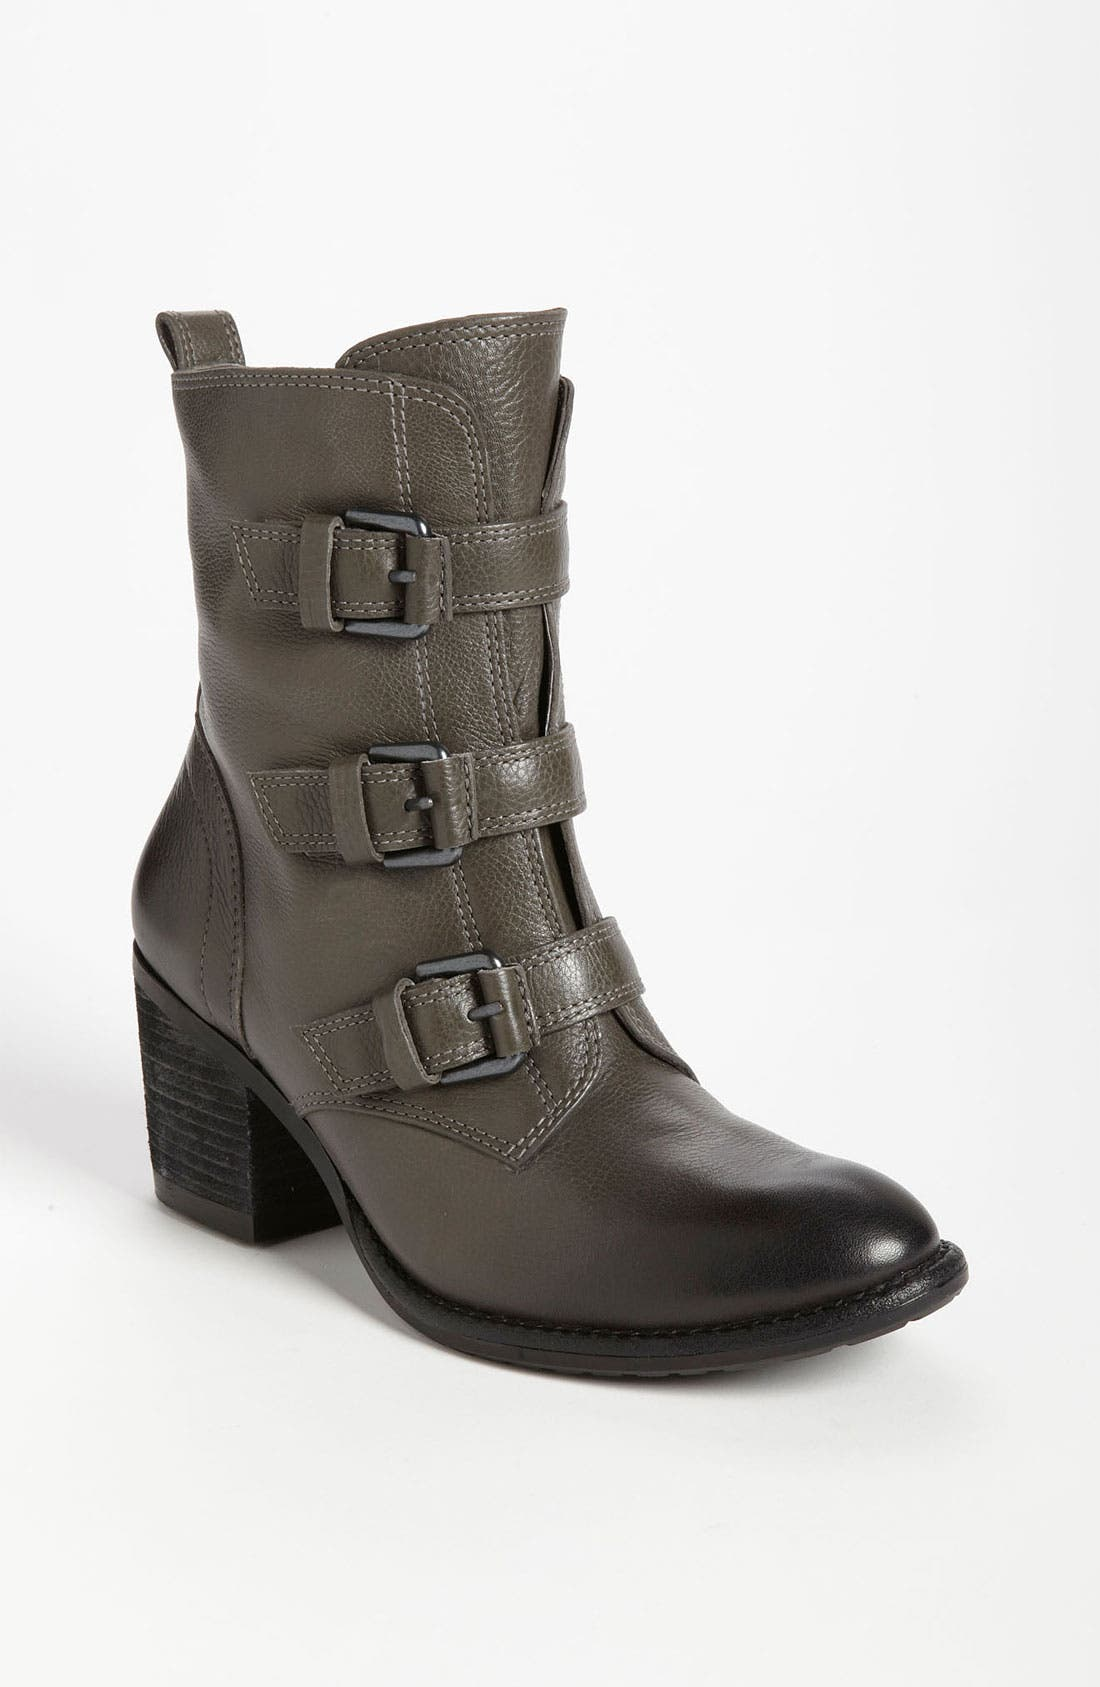 Alternate Image 1 Selected - Vince Camuto 'Dassia' Boot